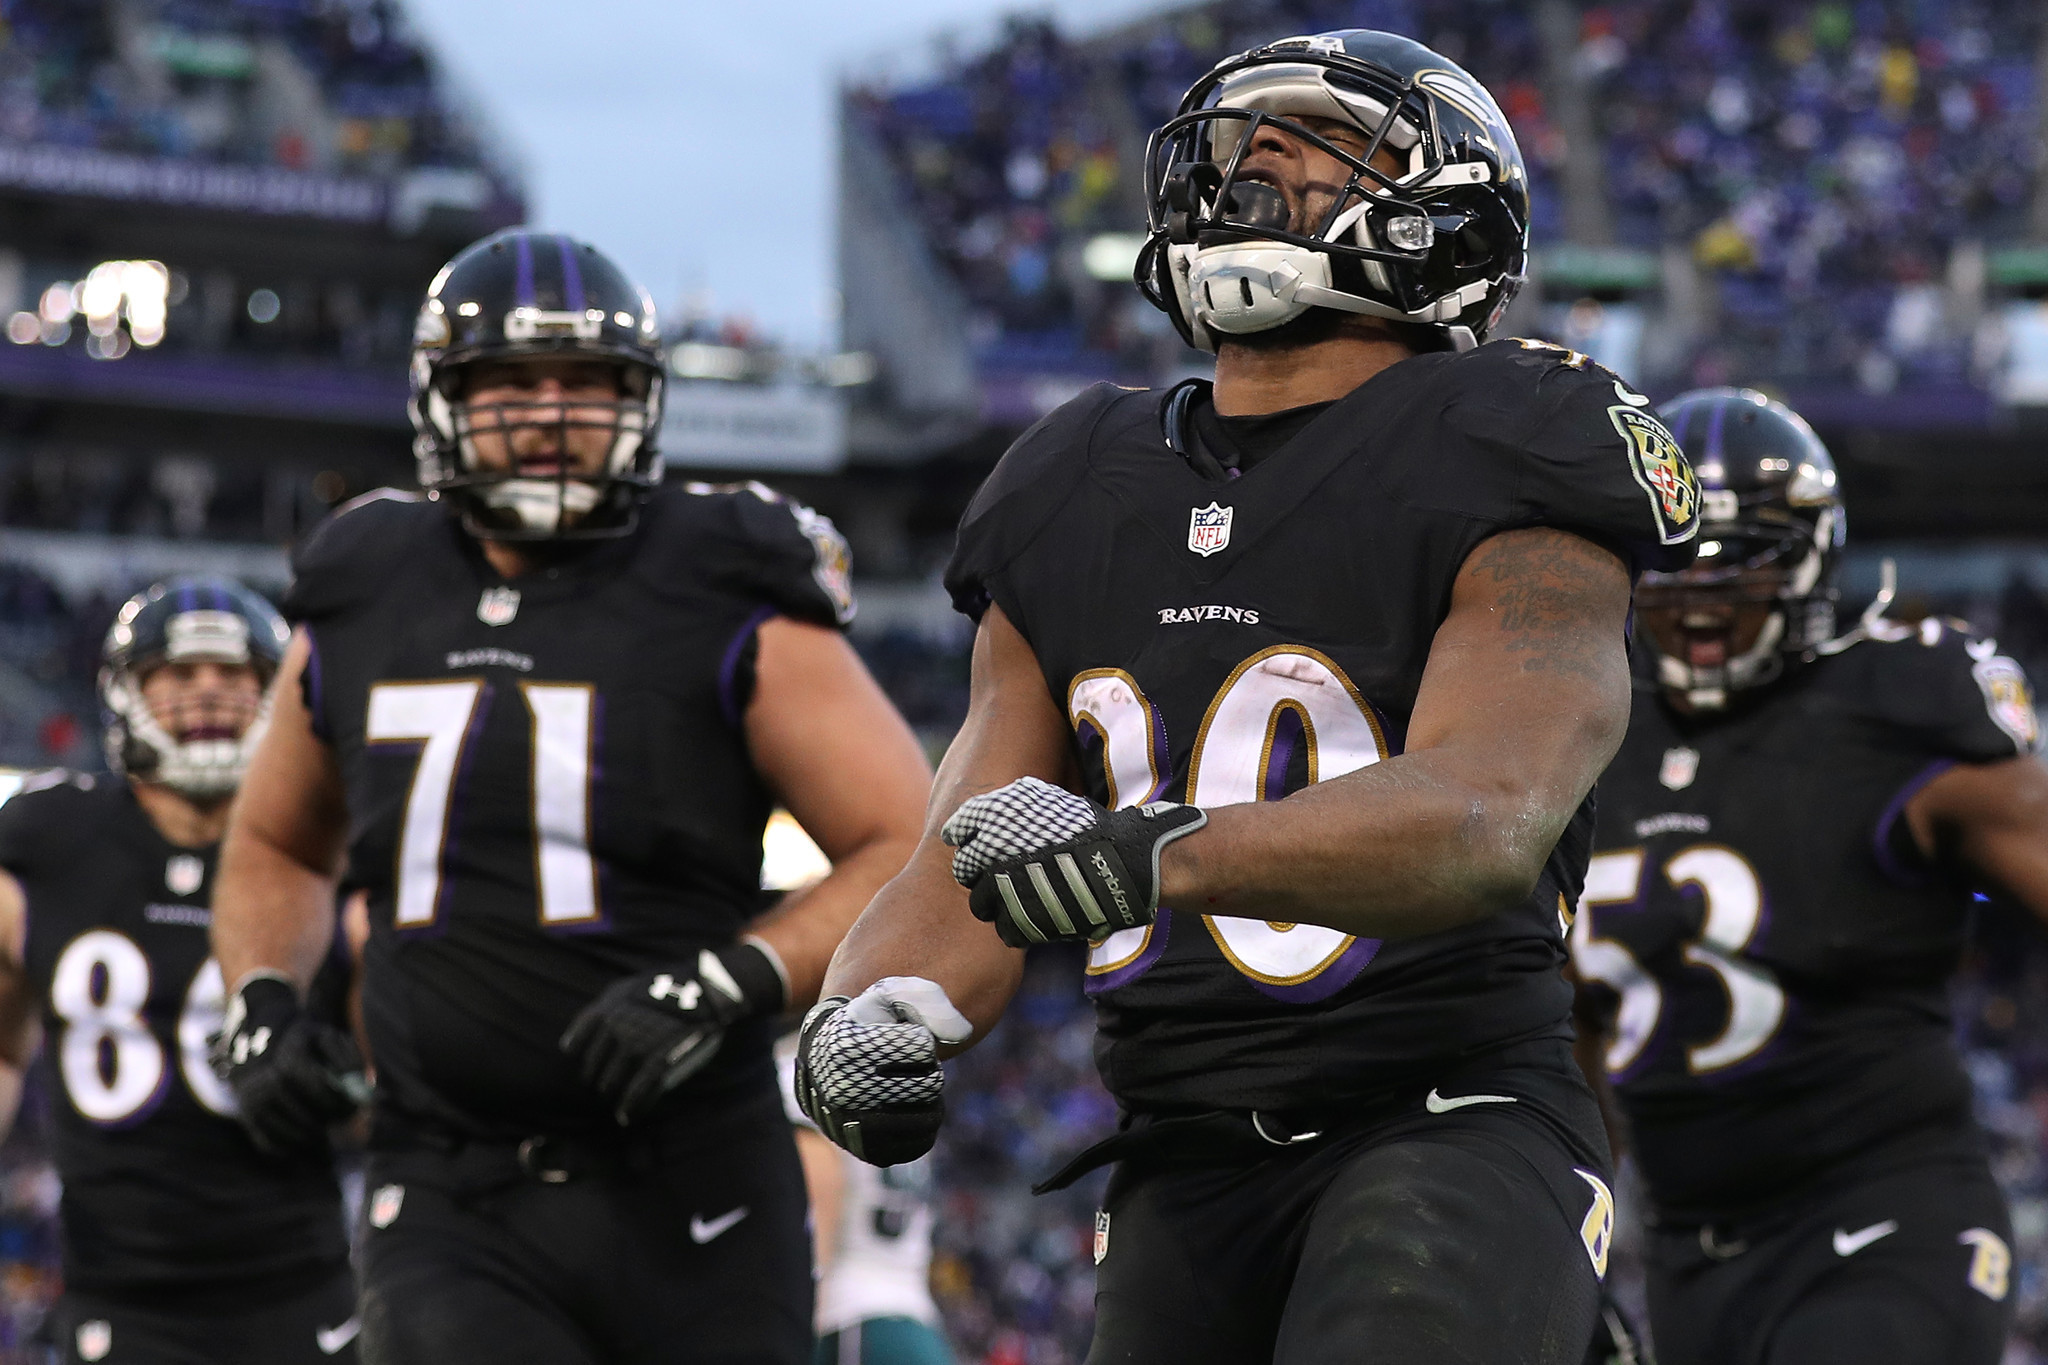 Zach orr retires due to congenital neckspine condition nfl com - Kenneth Dixon S Rookie Campaign Was A Series Of Lessons Learned For The Ravens Running Back